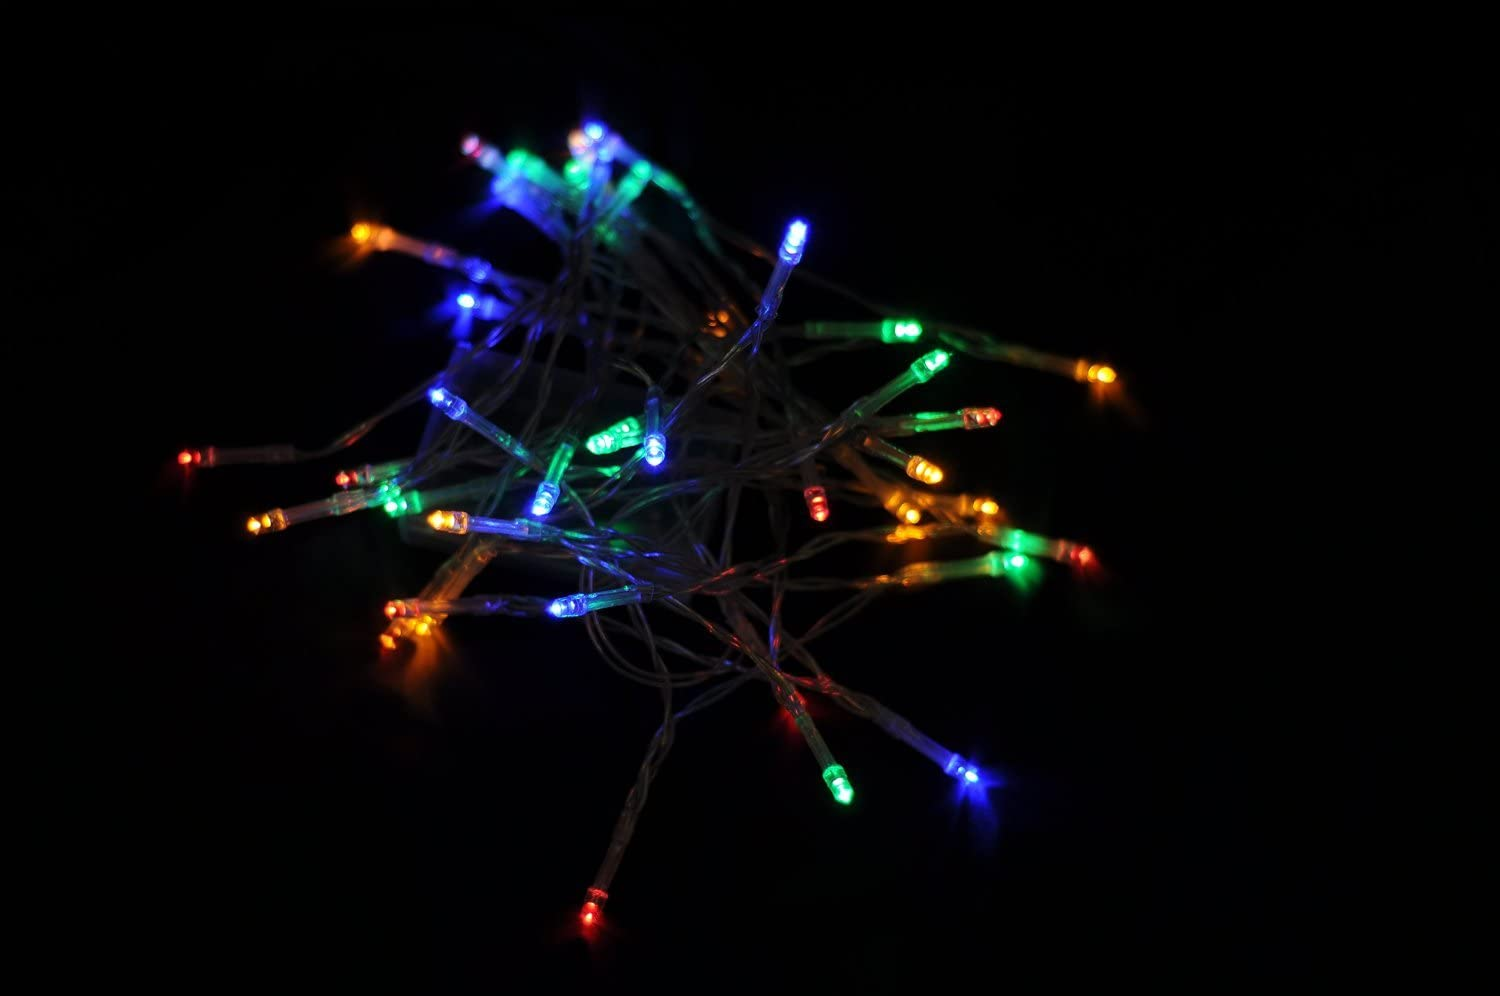 Blue Karlling Battery Operated Blue 40 LED Fairy Light String Wedding Party Xmas Christmas Decorations